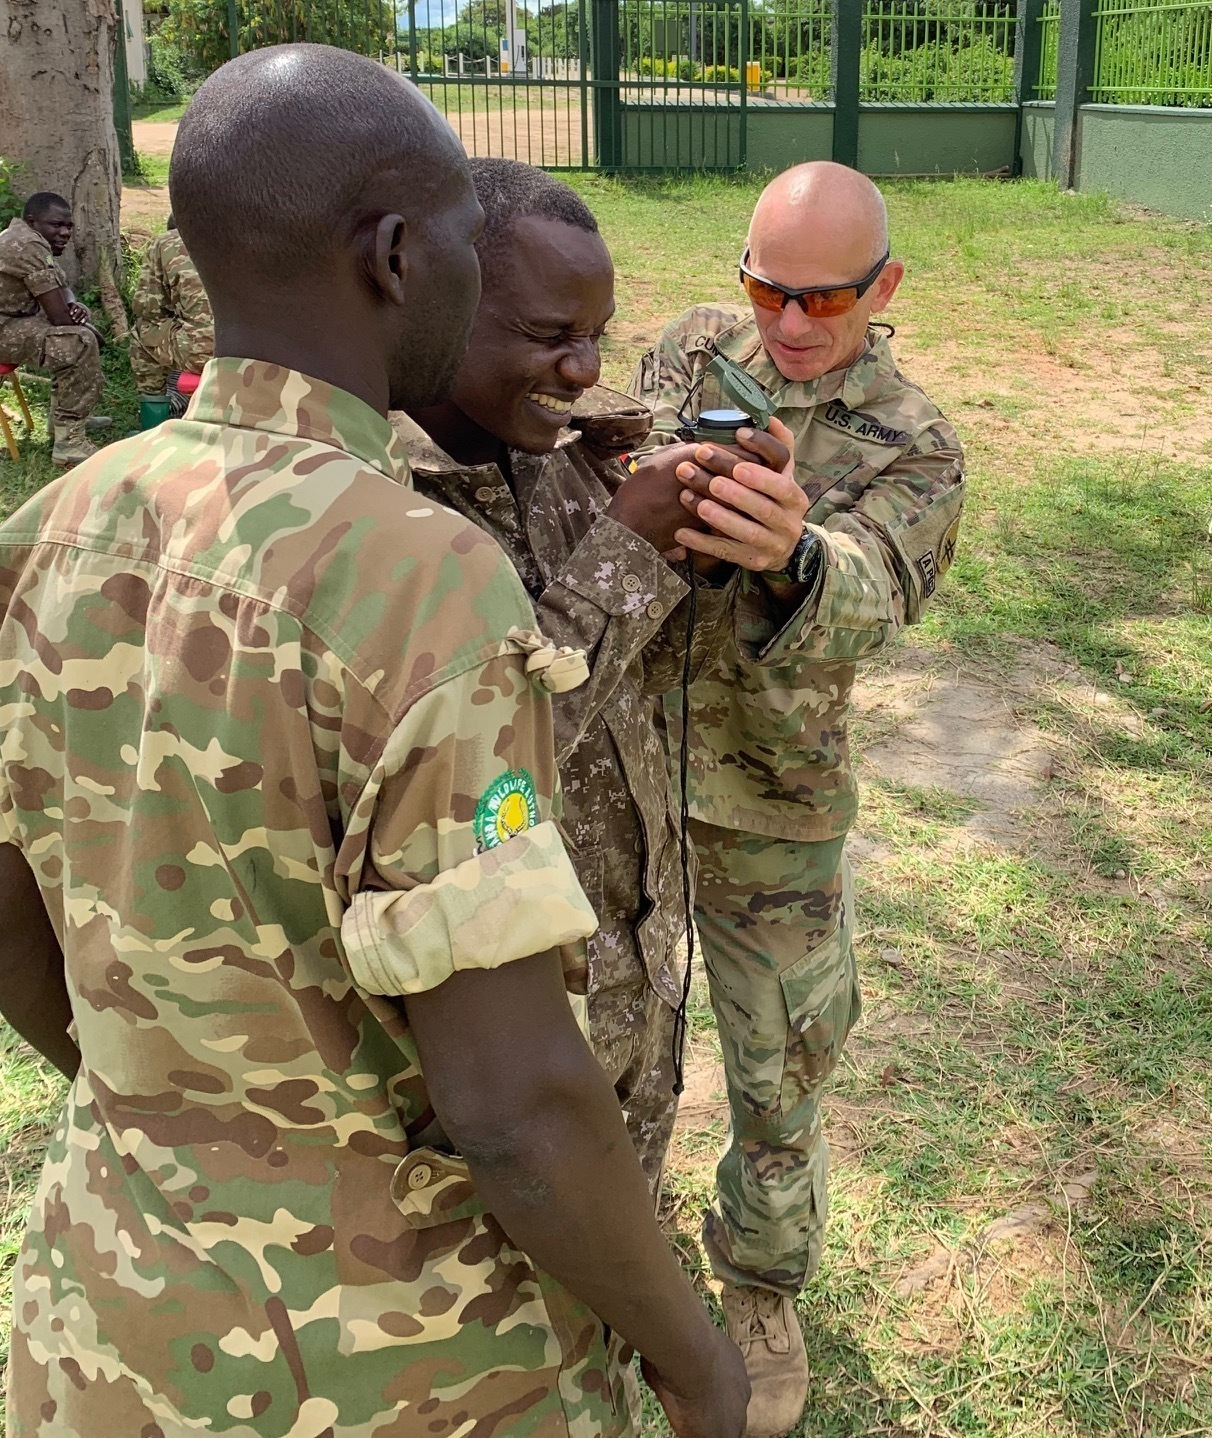 U.S. Army Master Sgt. James Cummings, a 403rd Civil Affairs Battalion Soldier assigned to Combined Joint Task Force-Horn of Africa (CJTF-HOA), assists African coalition partners during a navigation class in Kampala, Uganda, May 20, 2019. Personnel from the civil affairs battalion, travelled to Uganda to take part in a subject matter expert exchange with coalition forces as part of a Uganda Wildlife Authority counter-illicit trafficking course. (Courtesy photo)